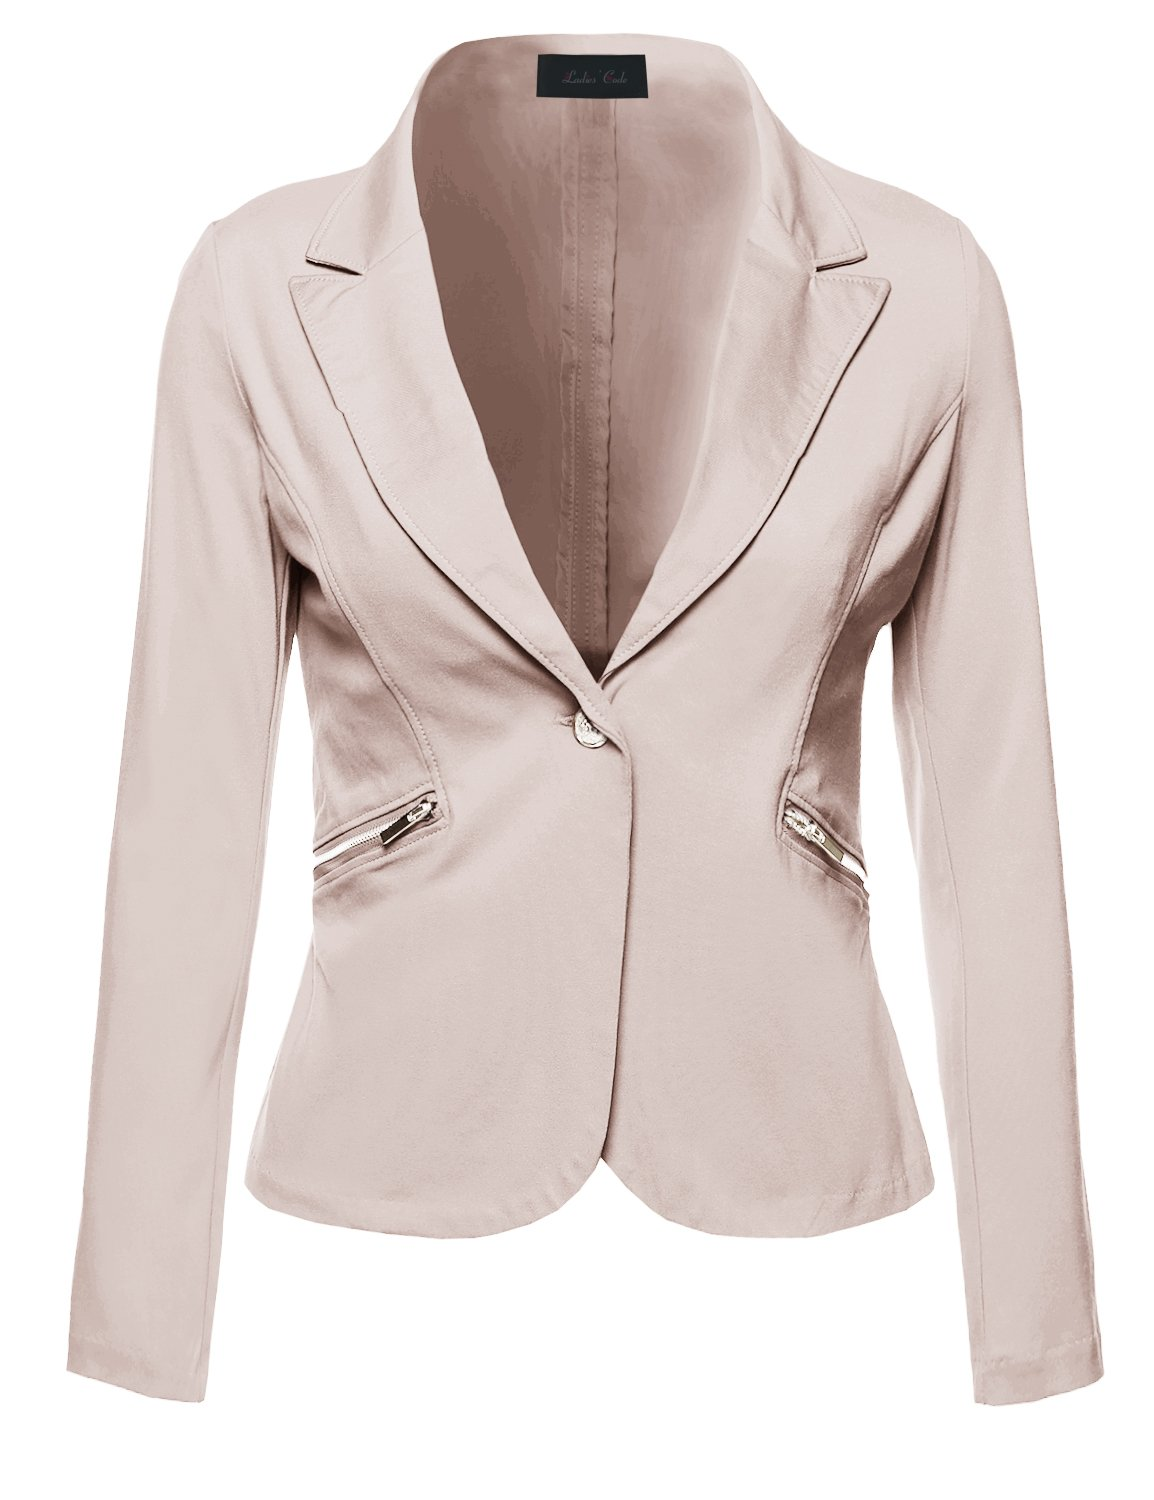 Ladies' Code Business Office Wear Long Sleeve One Button Fly Blazer Khaki M Size by Ladies' Code